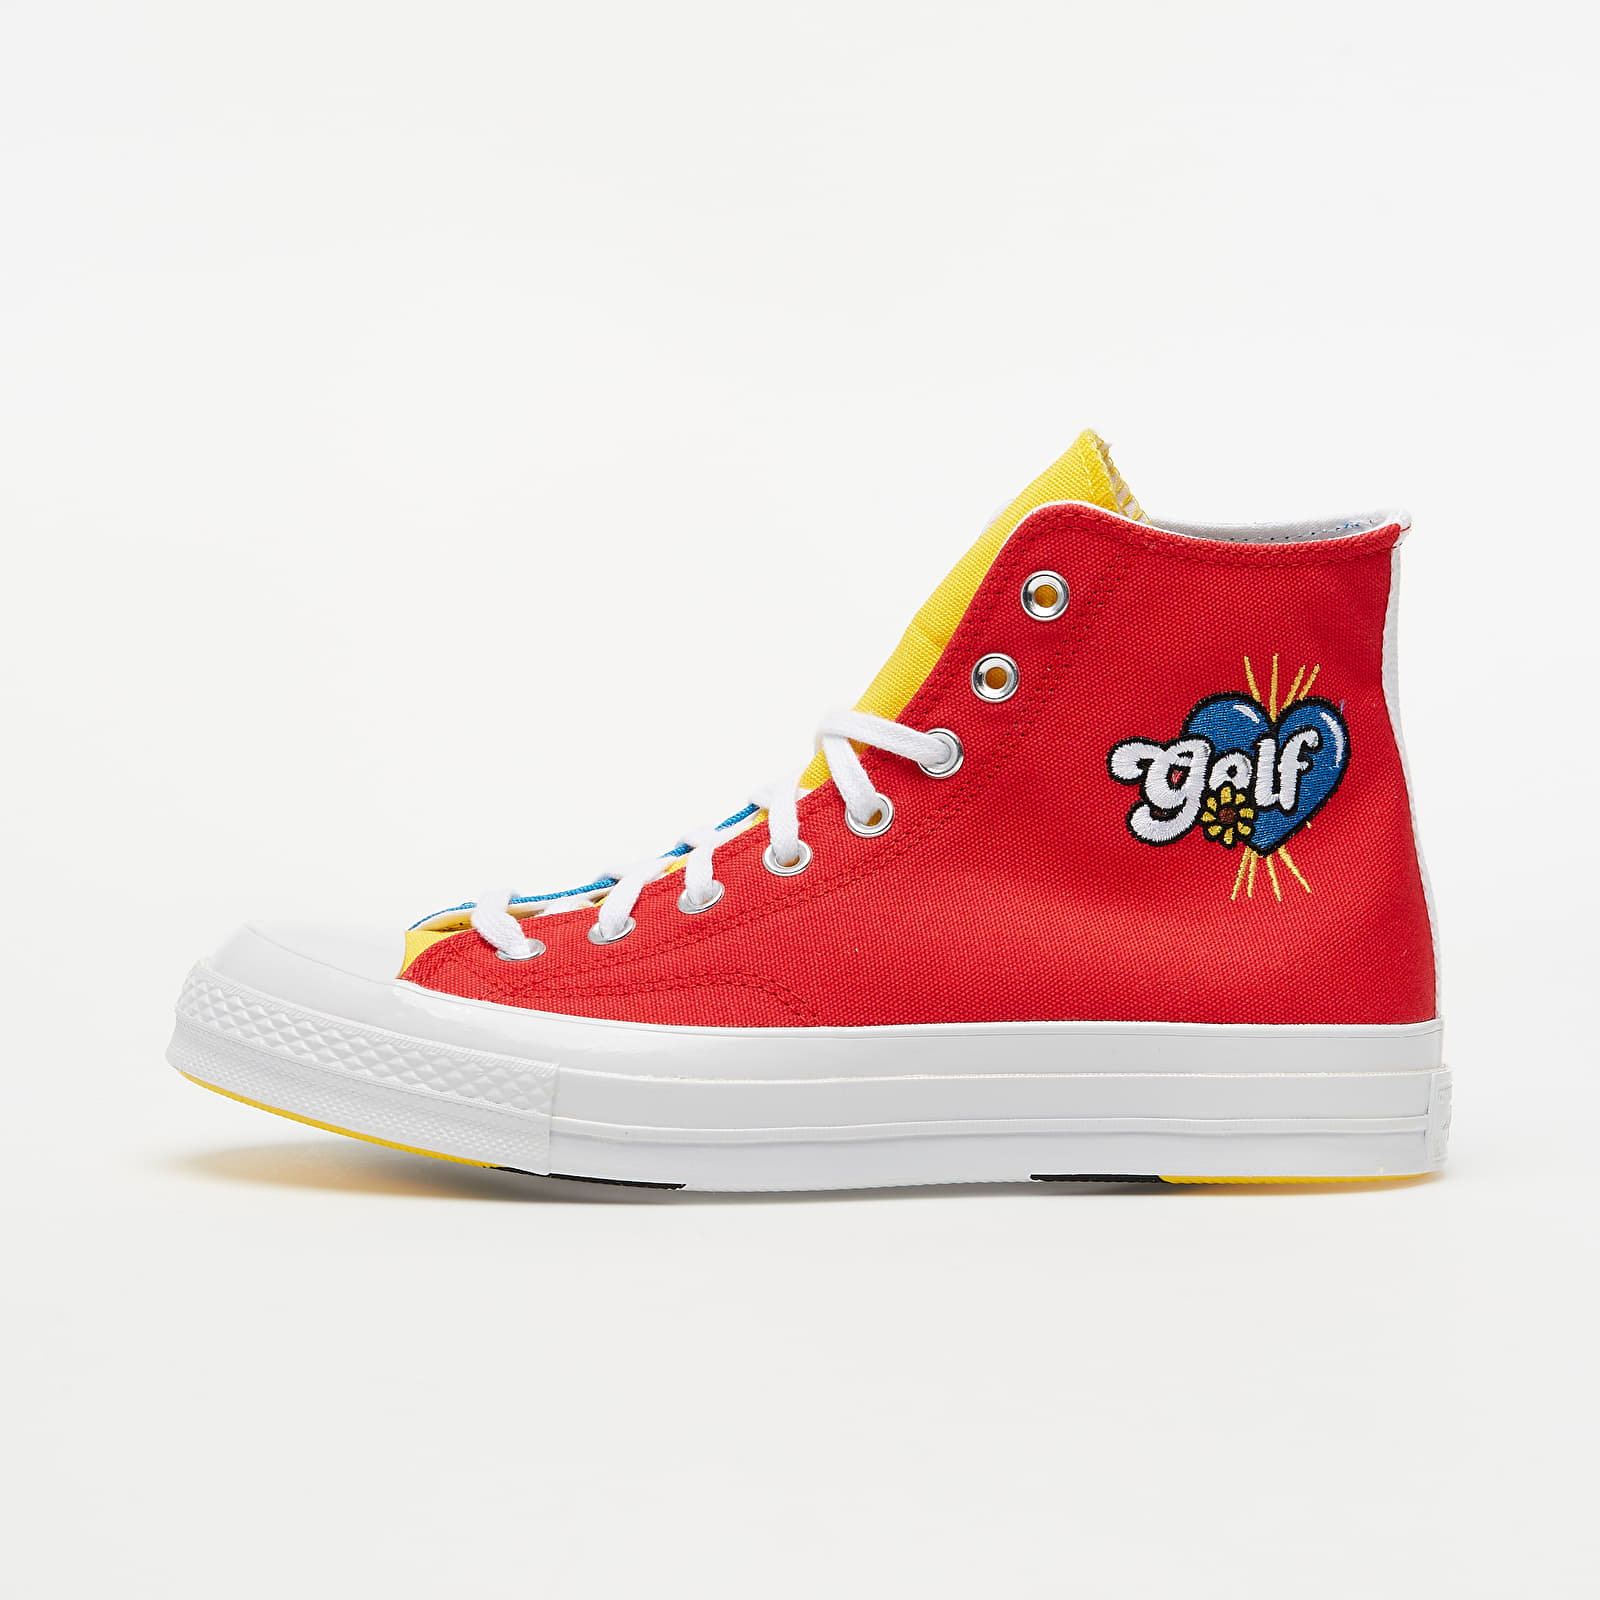 Men's shoes Converse x Golf Wang Chuck 70 Blue Yellow/ Red